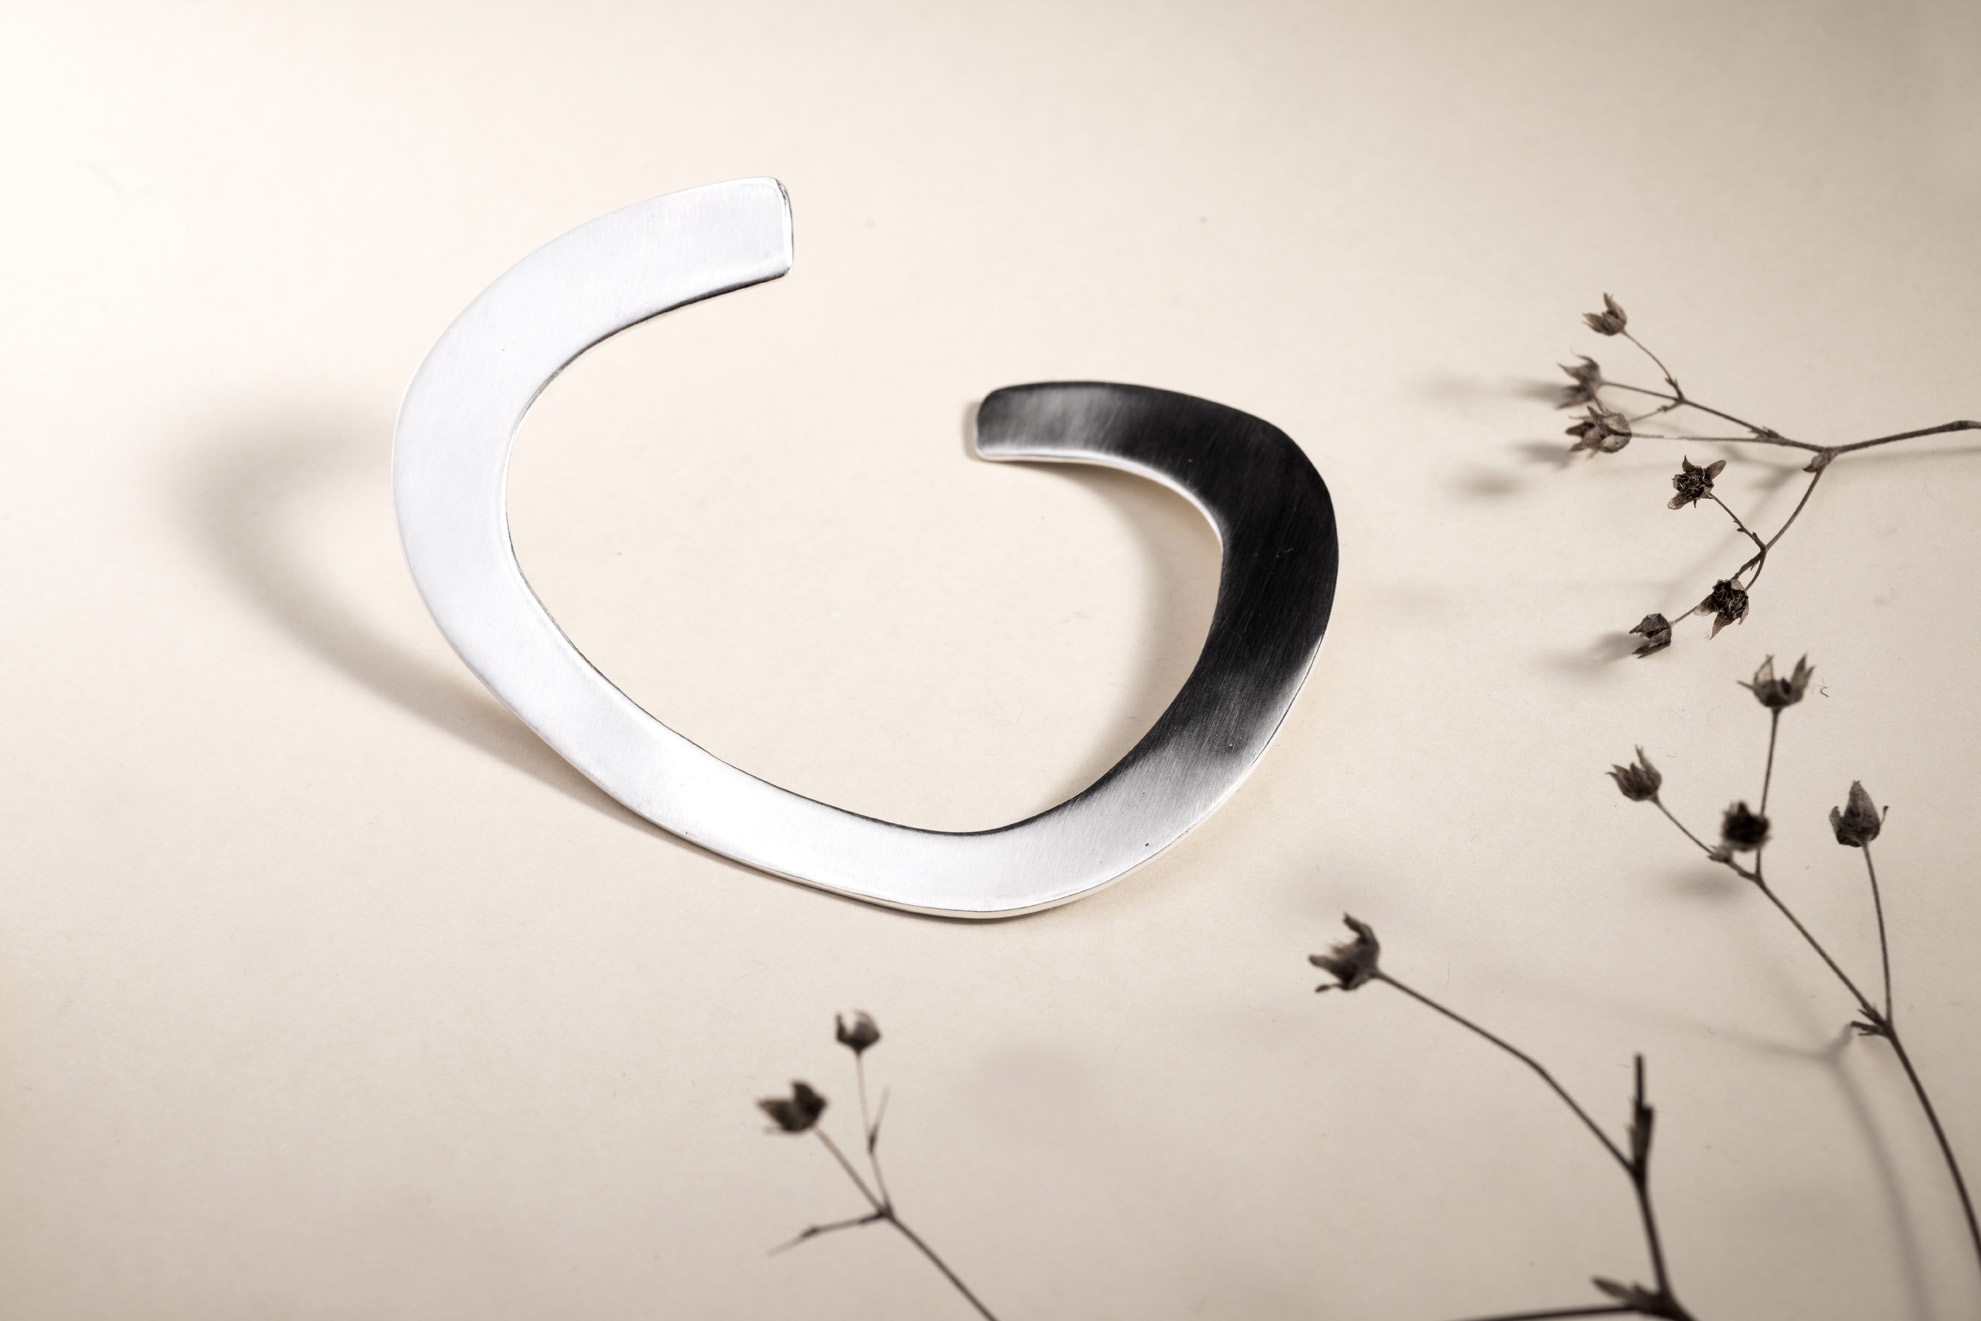 Armring in silver, KGD for Hillestad, 14S